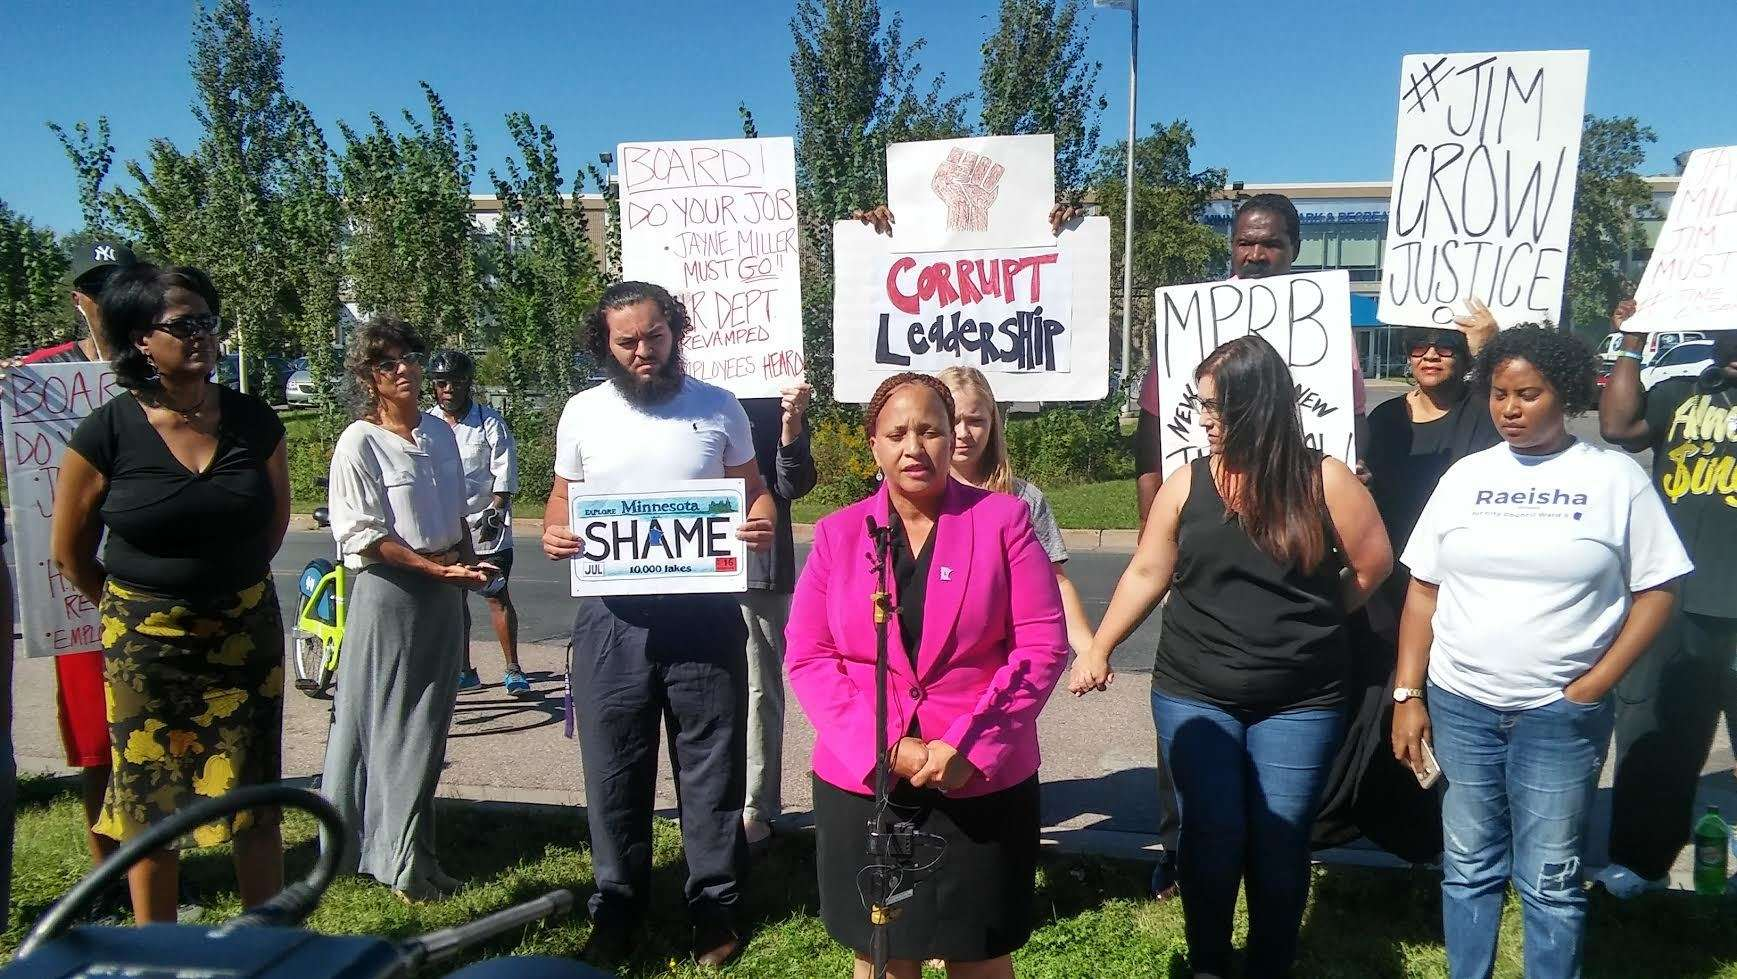 (l-r) Cathy Jones (at microphone), Davina Newman (behind Jones), Emily Flower, and Raeisha Williams along with other attendees of the September 8 press conference. Photo by Charles Hallman